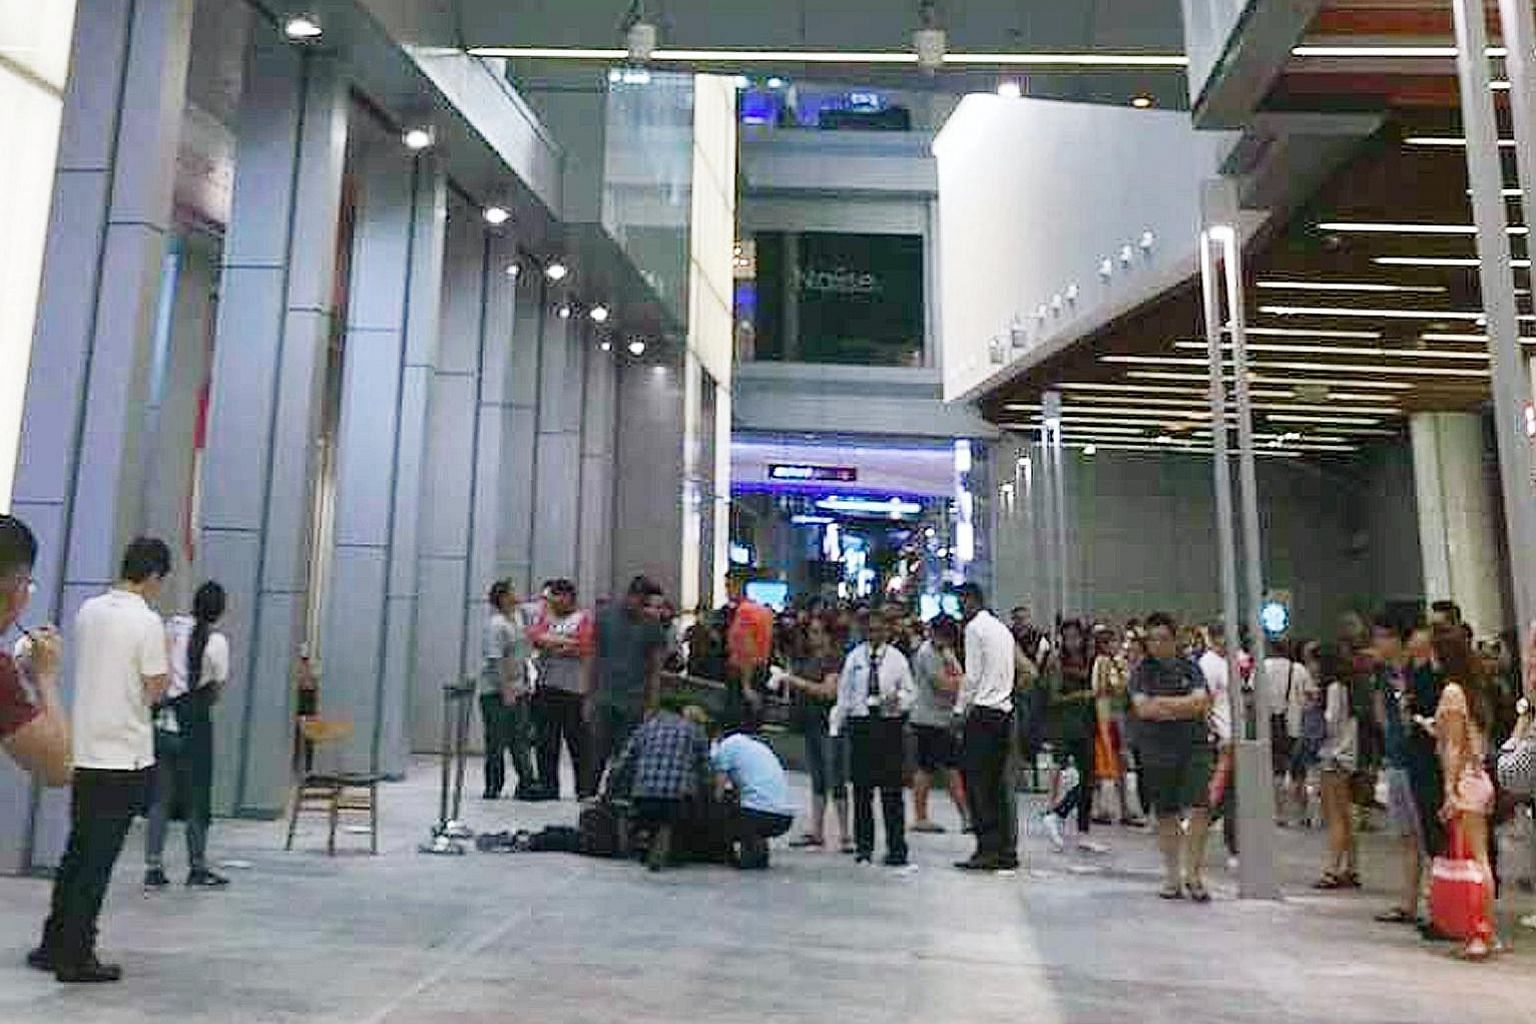 A 17-year-old died after he fell from the fourth storey of the Orchard Central mall yesterday afternoon. It is believed that the teen was taking a photo along the linkway bridge when his mobile phone dropped onto a ledge. He was trying to retrieve it